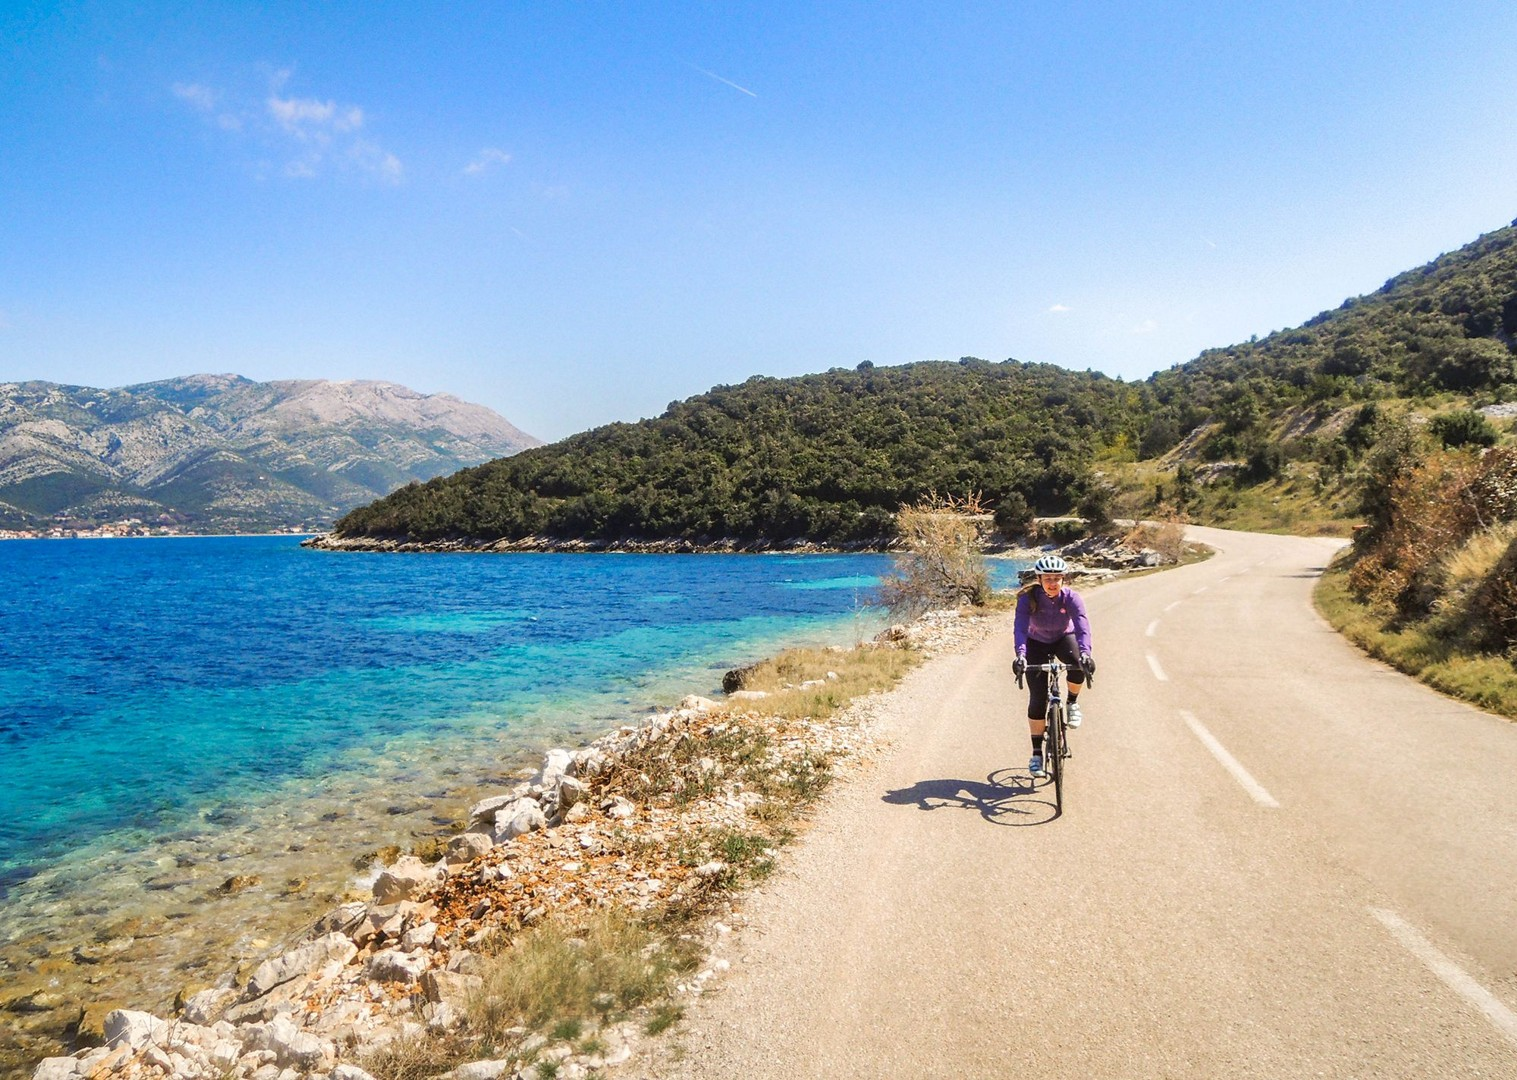 croatia-cycling-guided-road-tour-saddle-skedaddle-trip-sea.jpg - Croatia - Islands of the Dalmatian Coast - Guided Road Cycling Holiday - Road Cycling